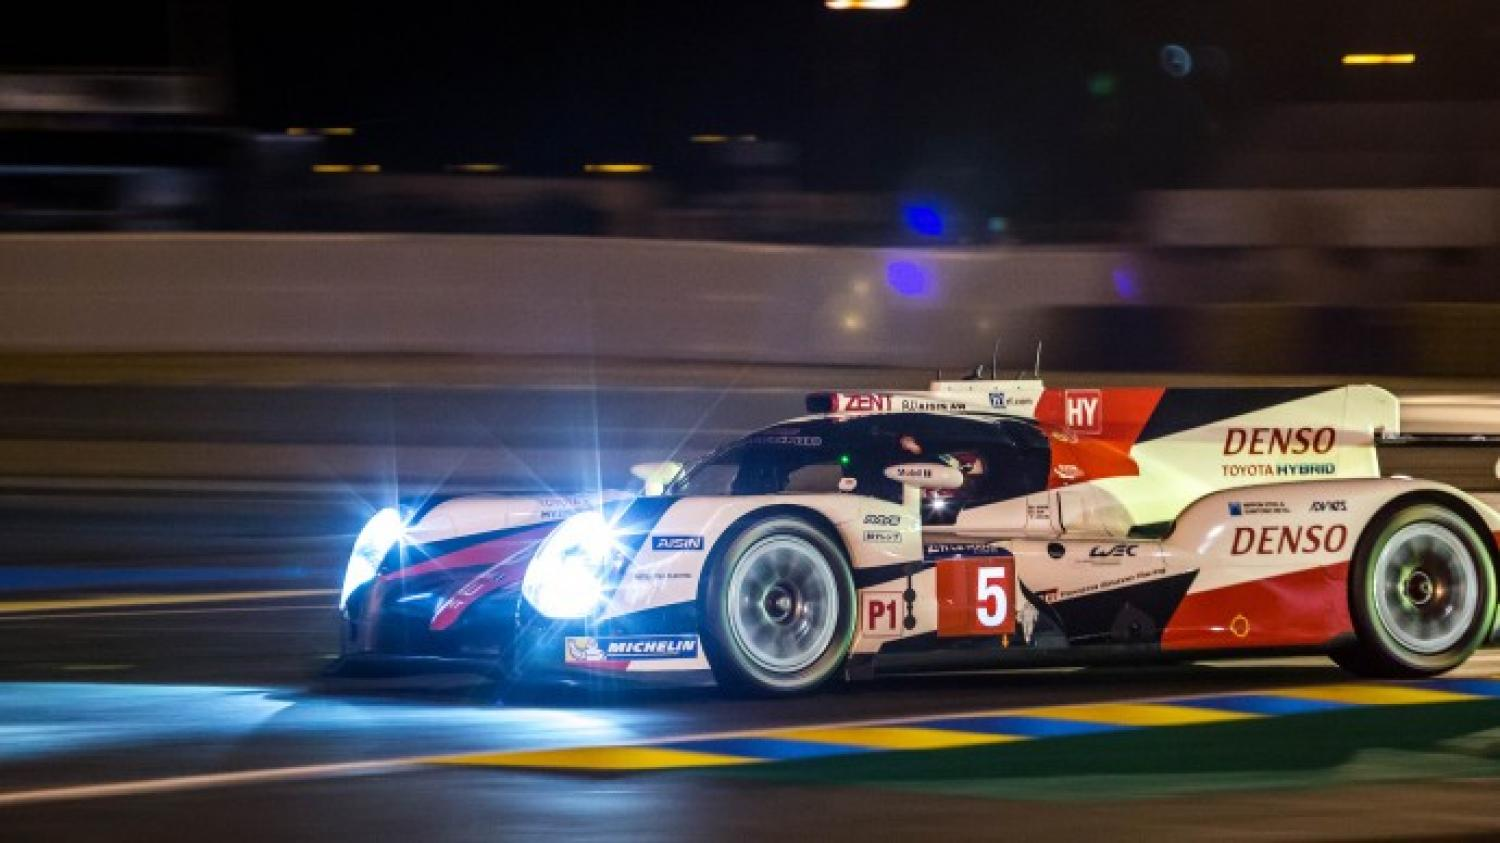 Toyota Gazoo Racing believe they are in with a chance